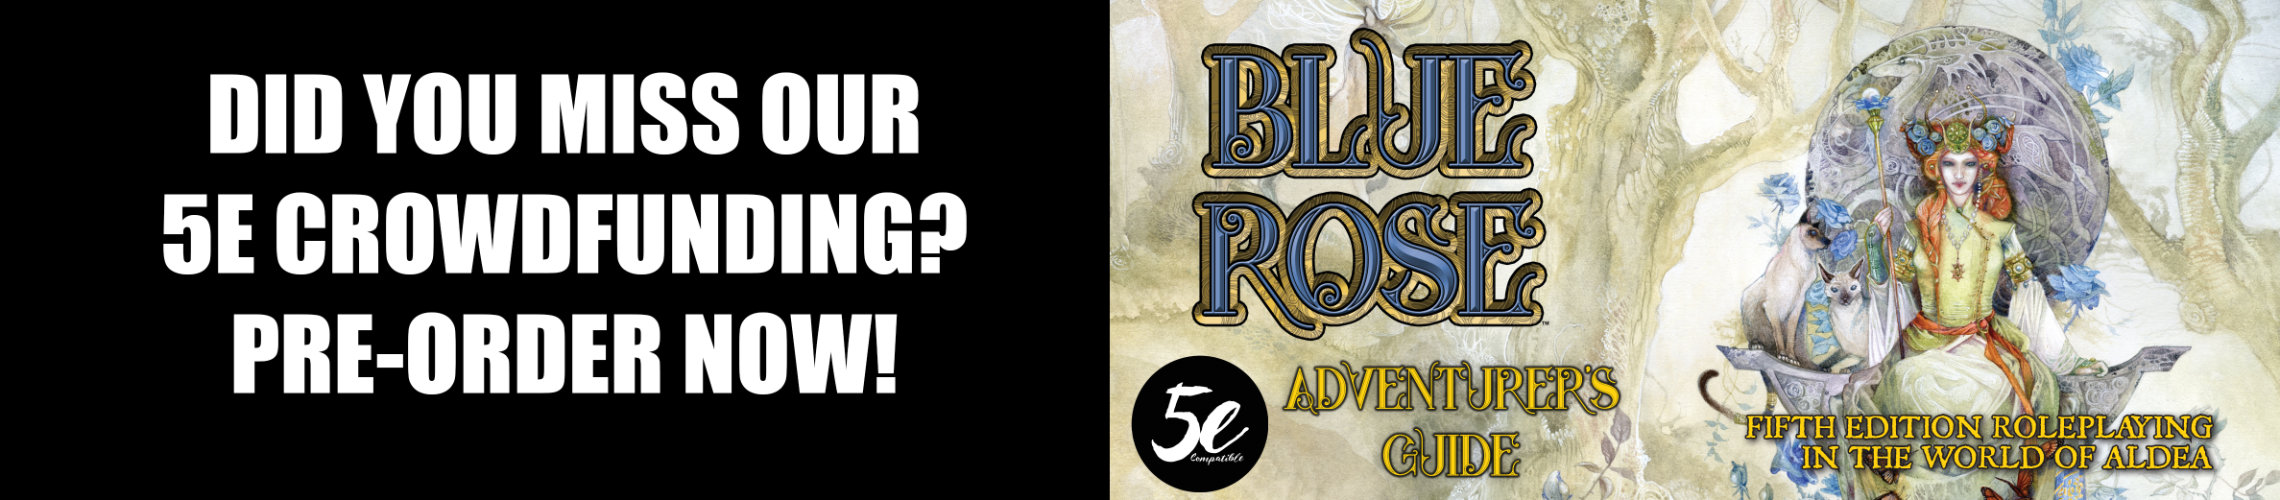 Blue Rose Adventurer's Guide for 5e: Missed the crowdfunder? Pre-order today!